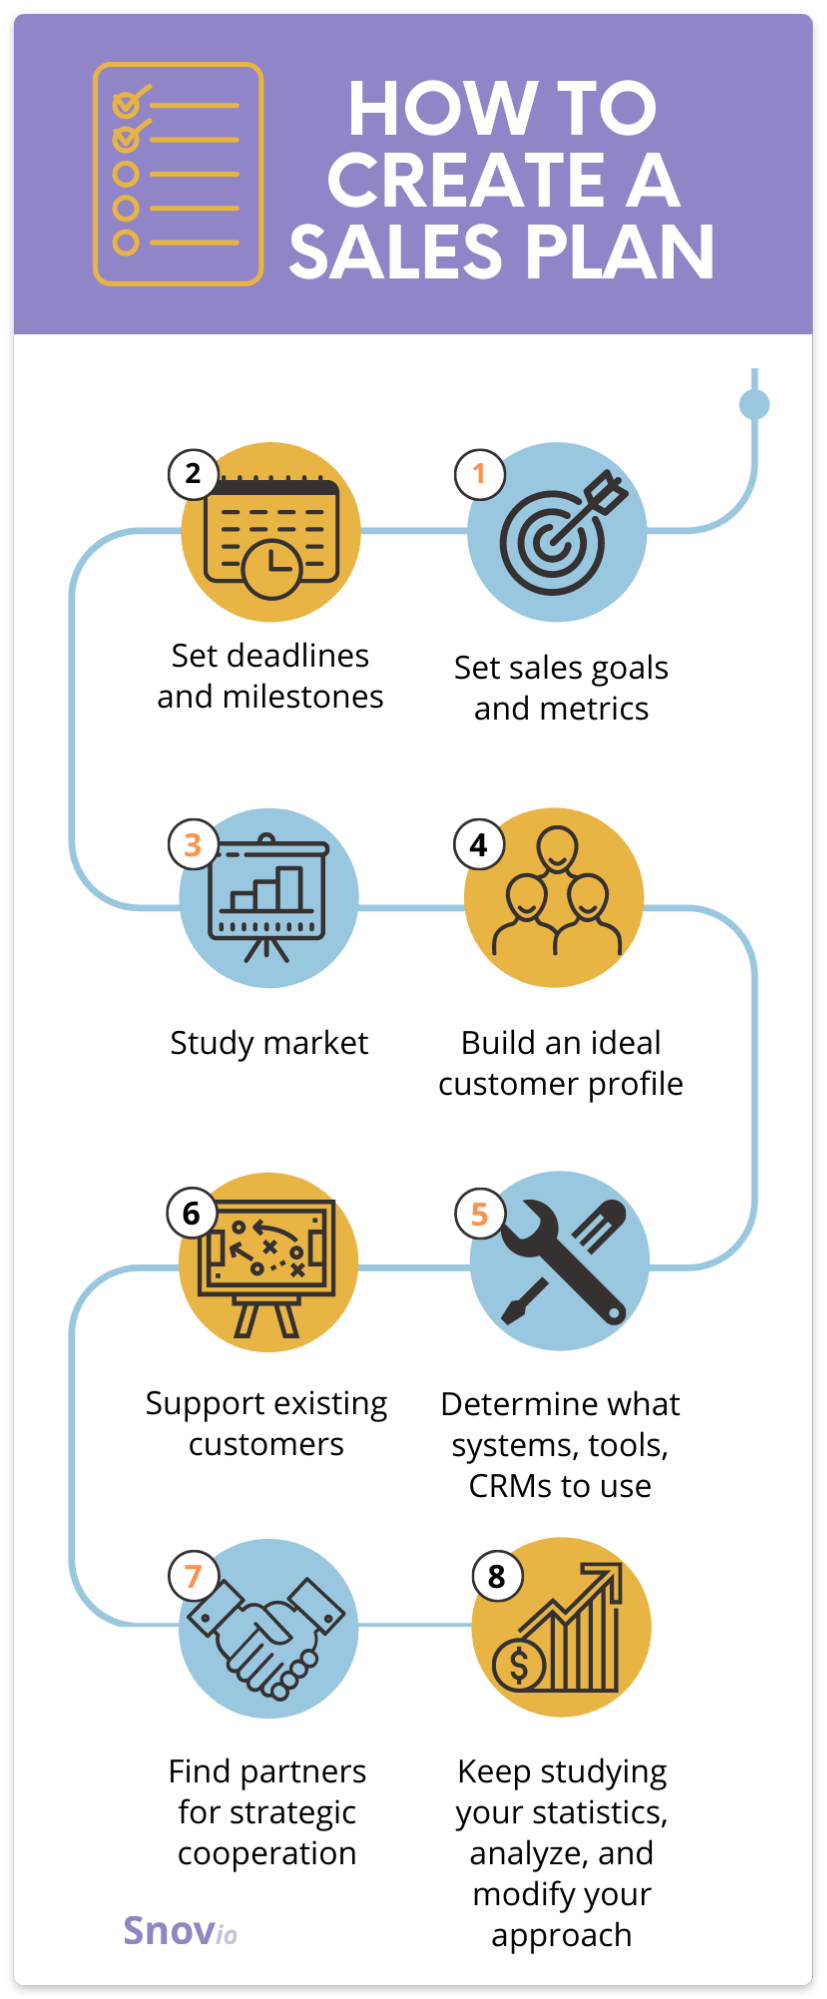 How to create a sales plan